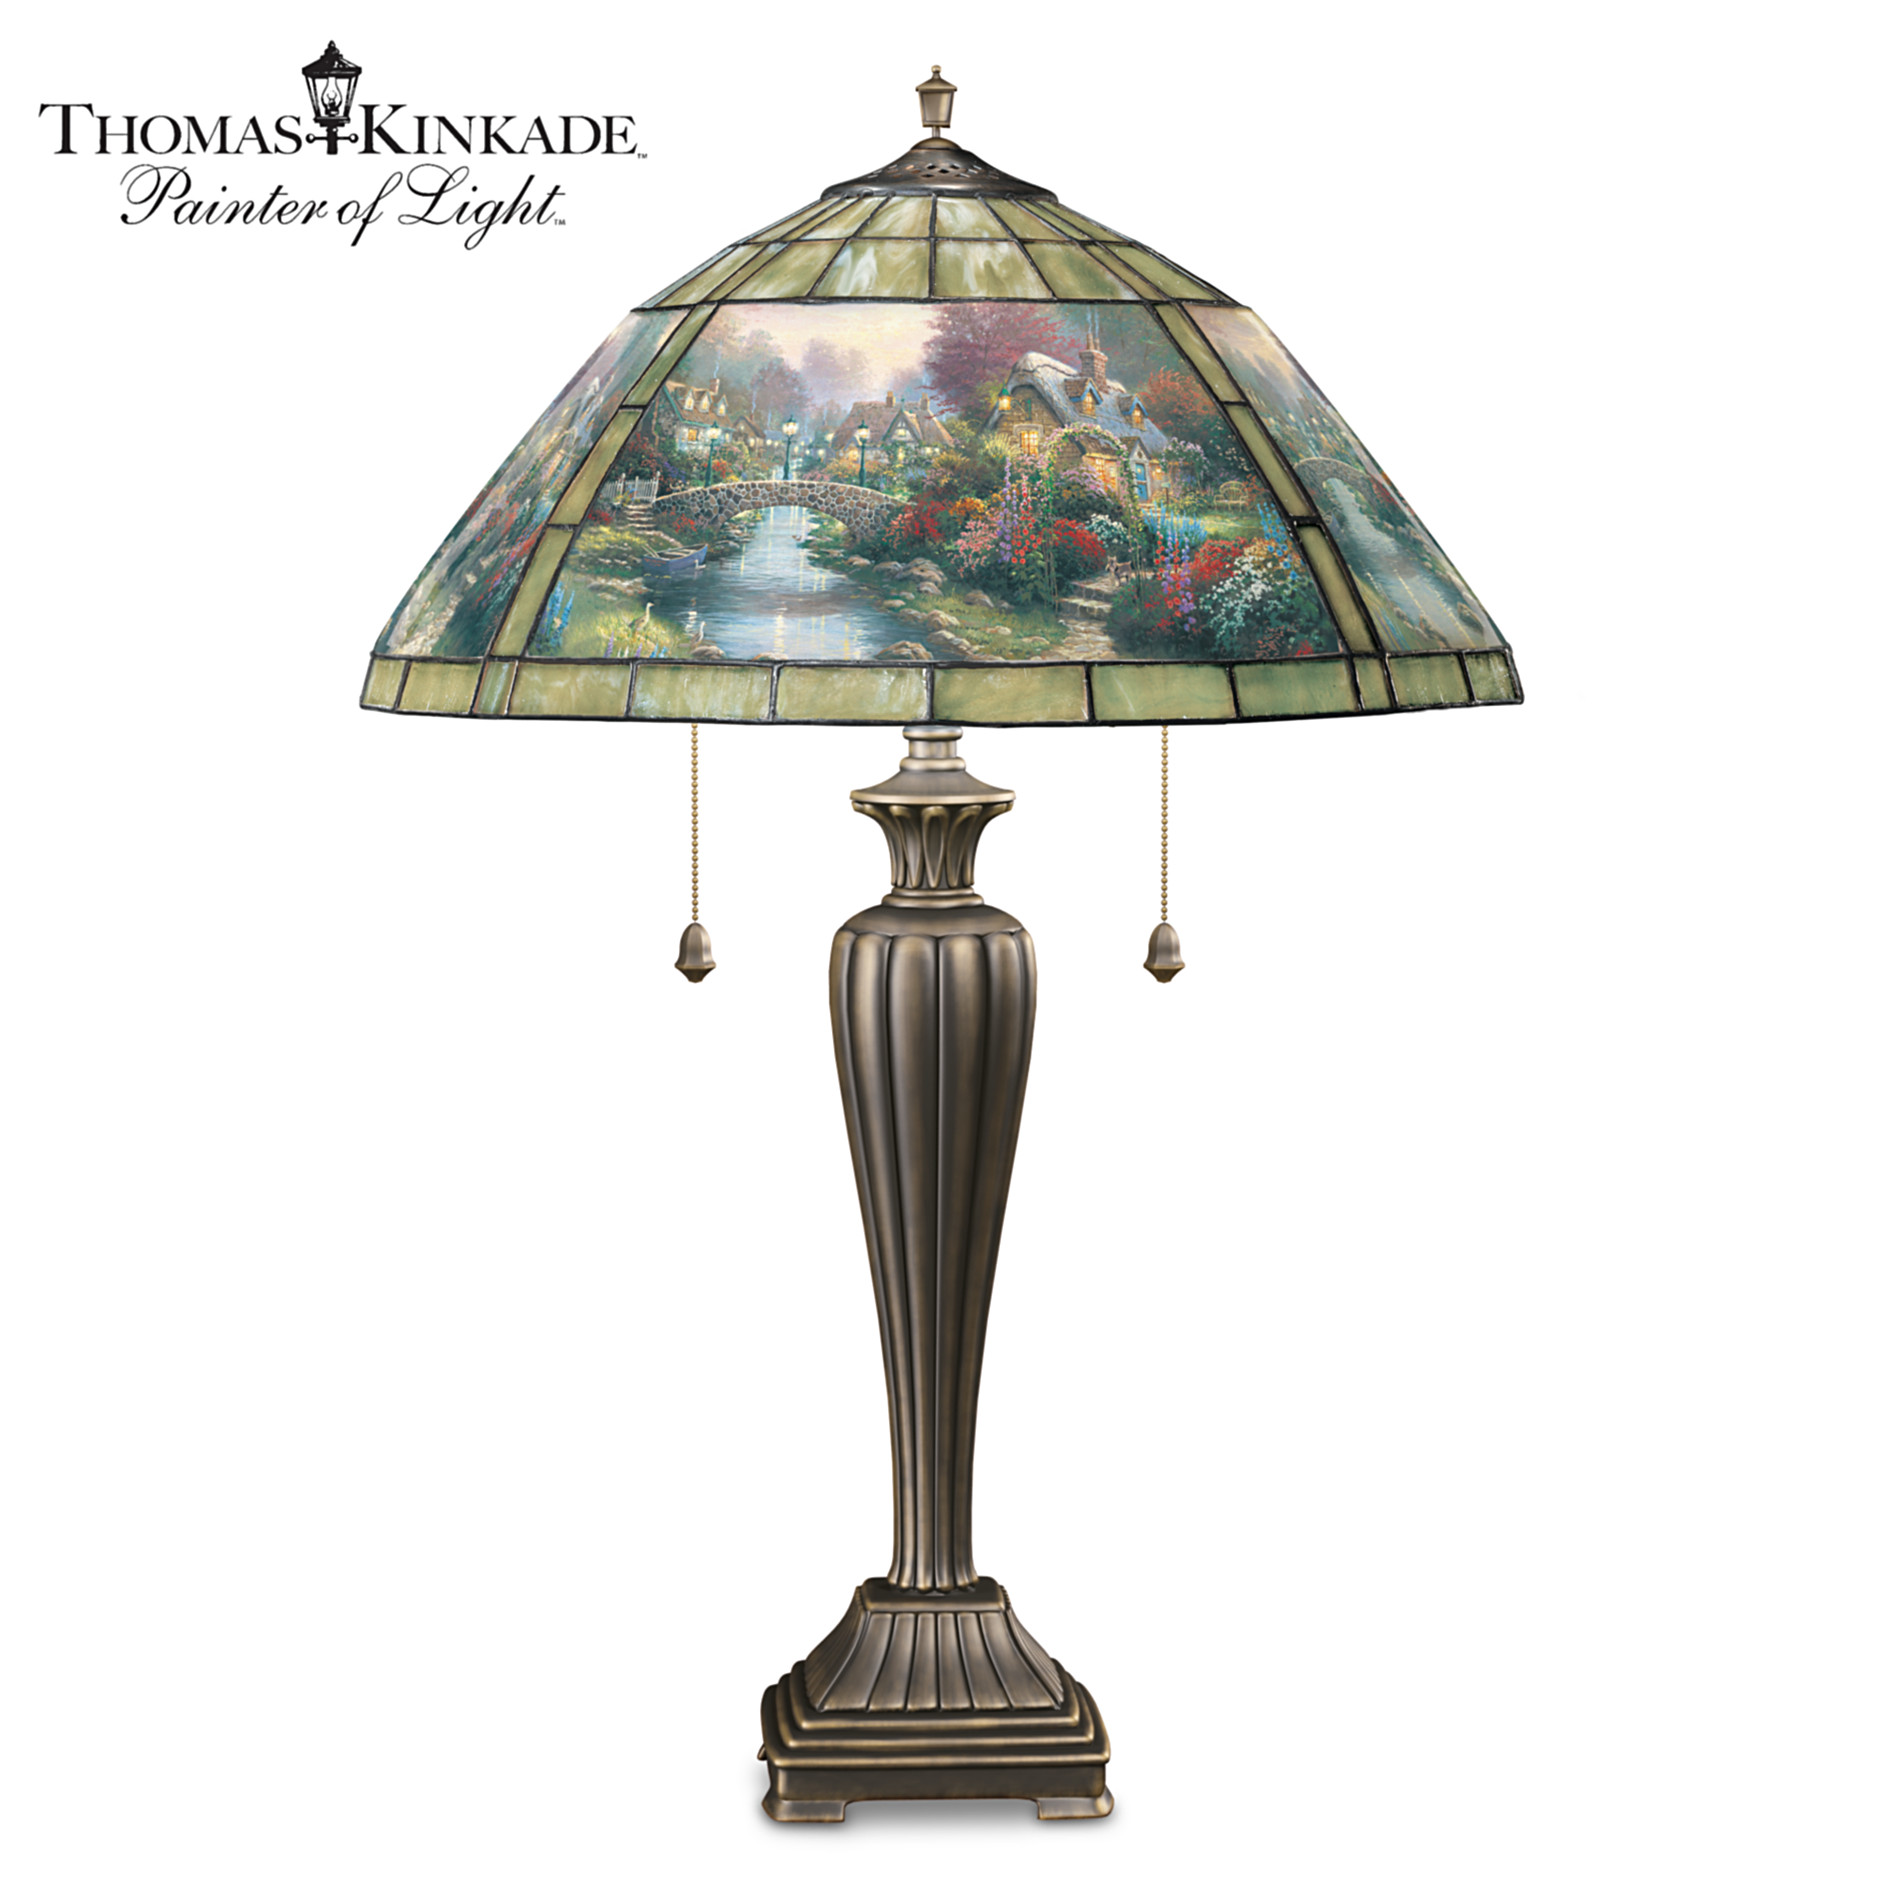 The Bradford Editions Thomas Kinkade Lamplight Bridge Unique Stained Glass Table Lamp at Sears.com